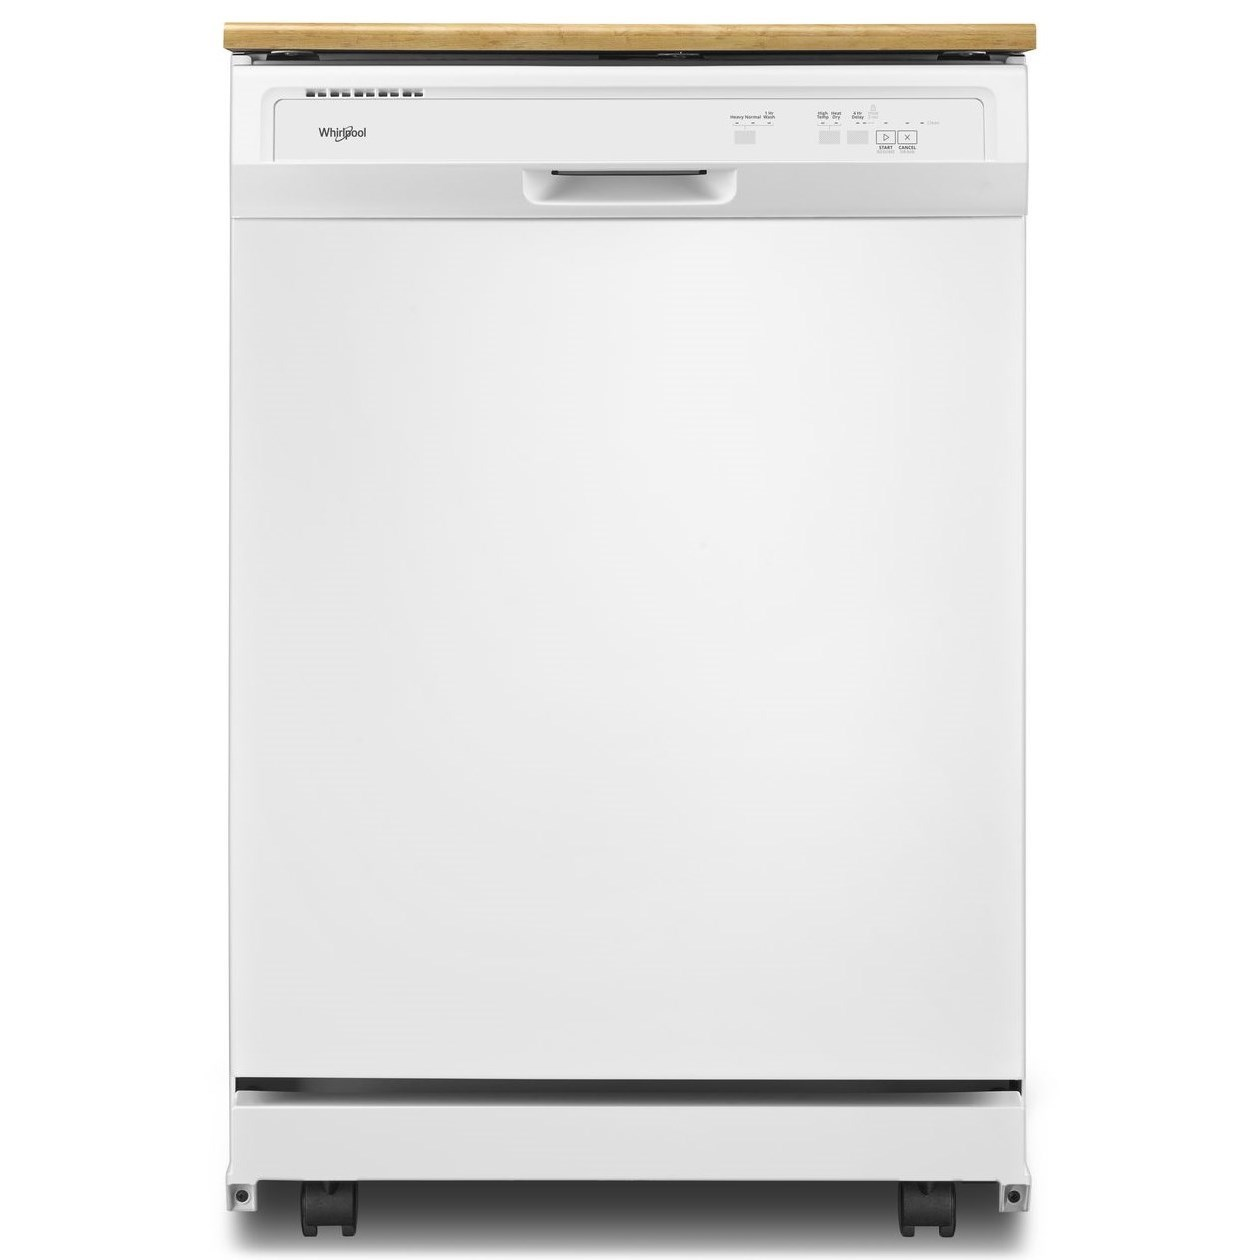 Dishwashers - Whirlpool Heavy-Duty Dishwasher with 1-Hour Wash Cycle by Whirlpool at Wilcox Furniture